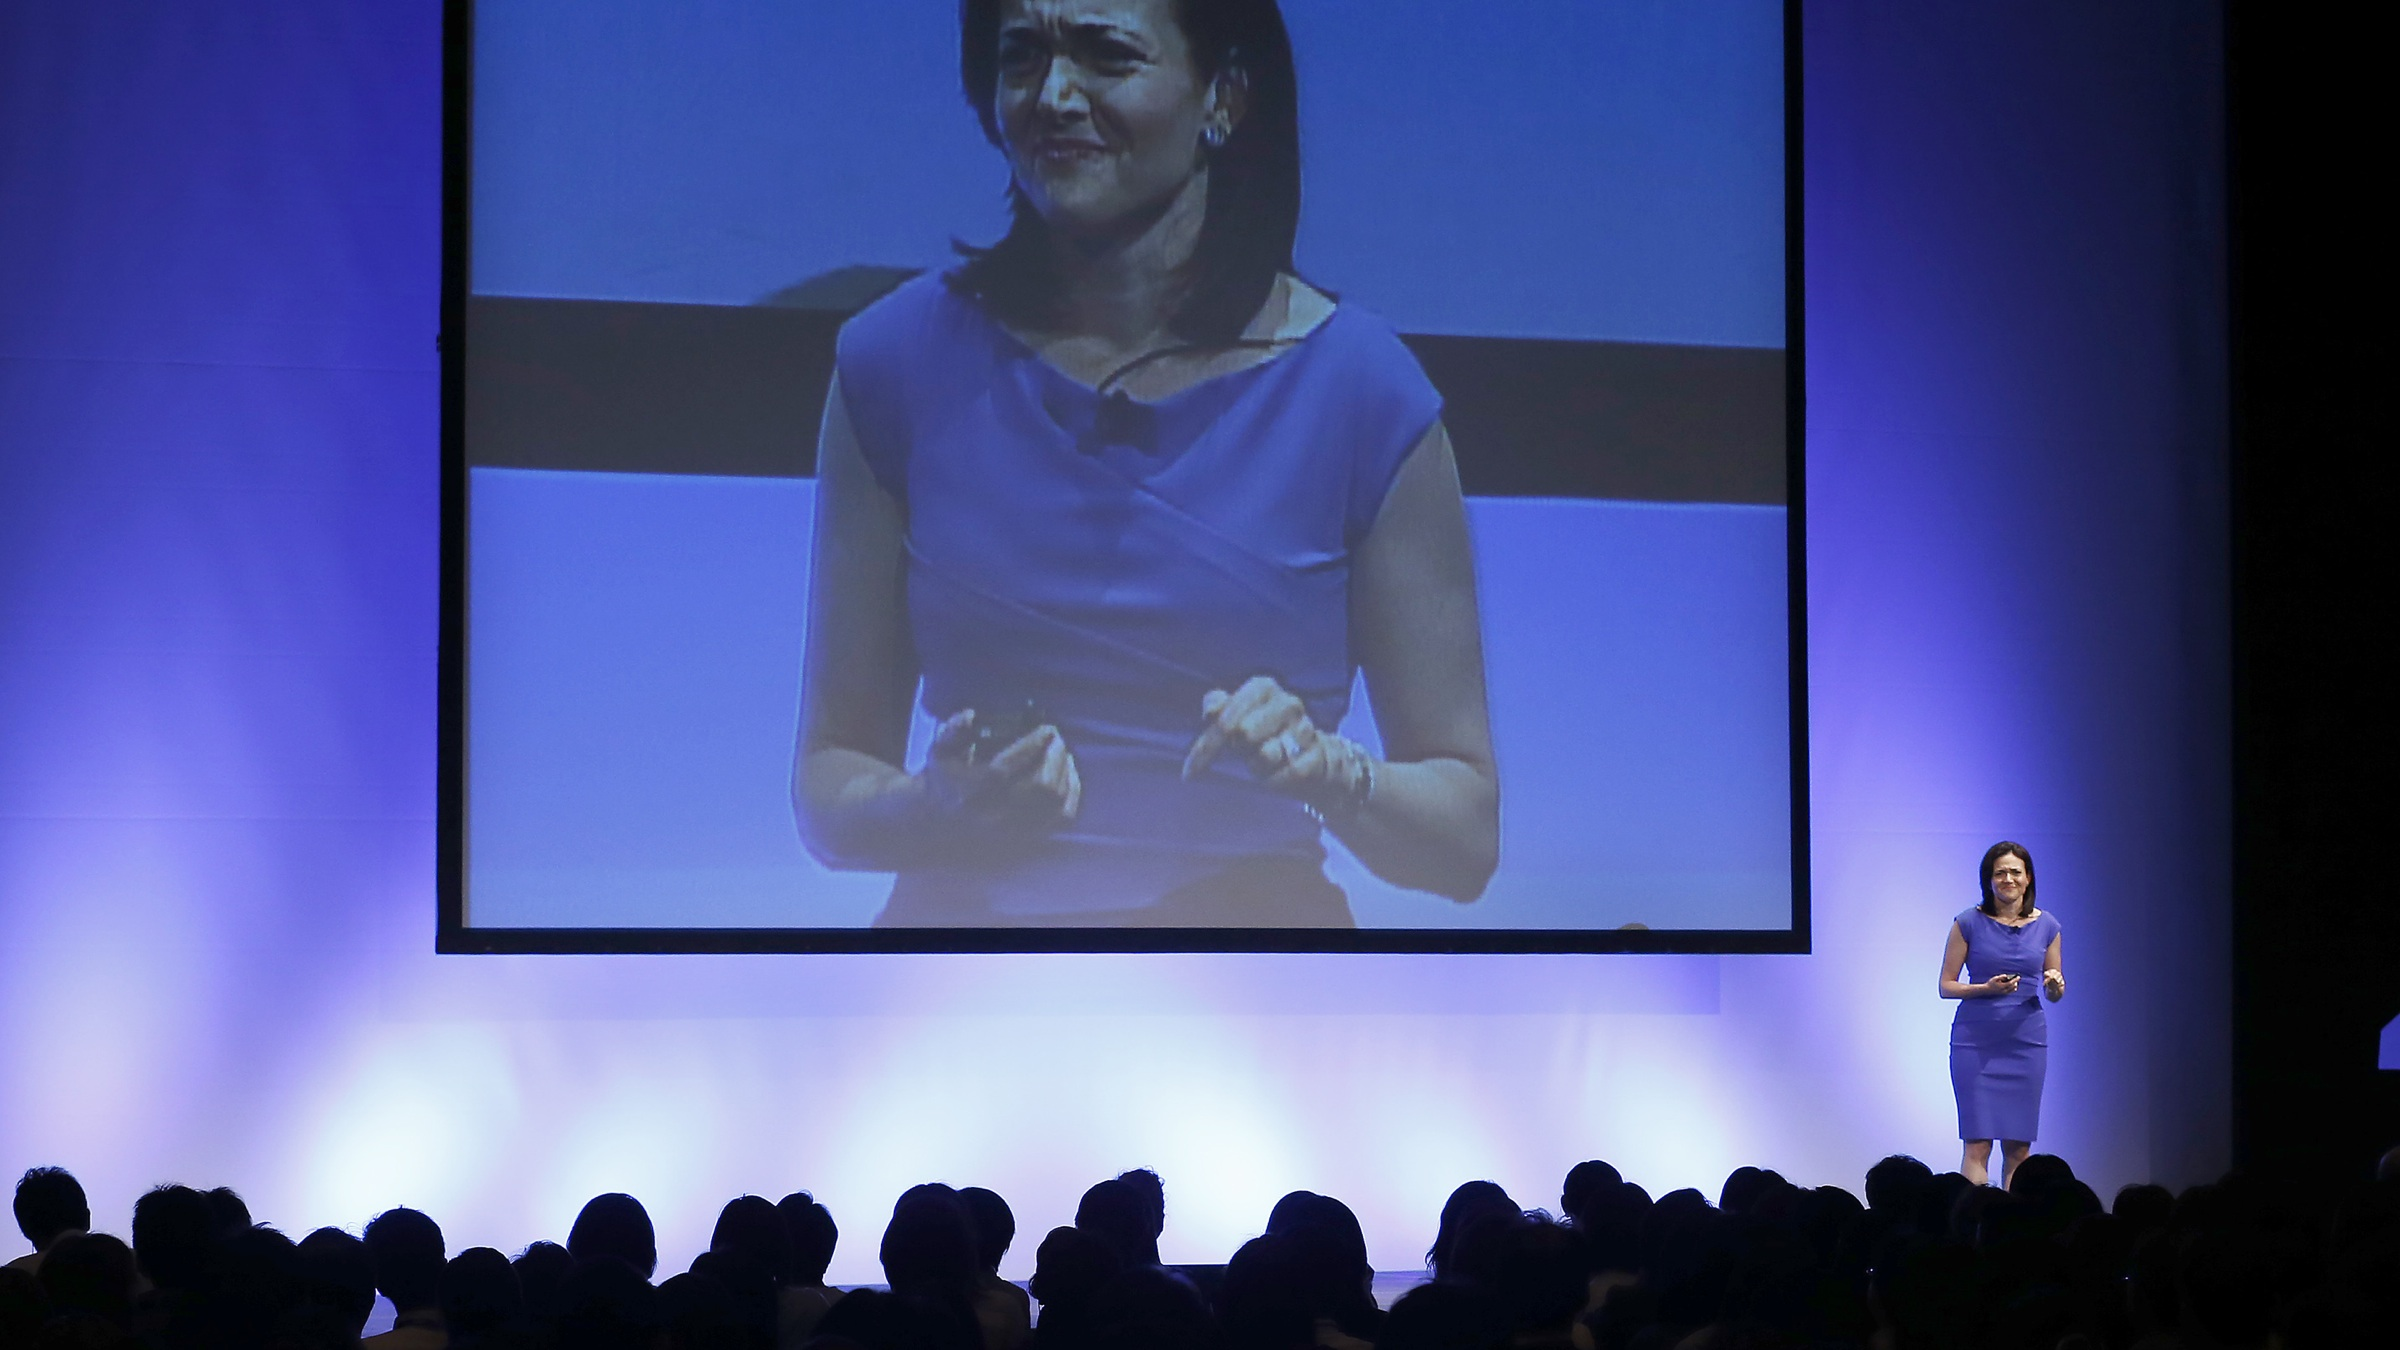 Facebook Chief Operating Officer Sheryl Sandberg delivers a speech during Global Women Leadership Summit in Tokyo, Tuesday, July 2, 2013. (AP Photo/Shizuo Kambayashi)